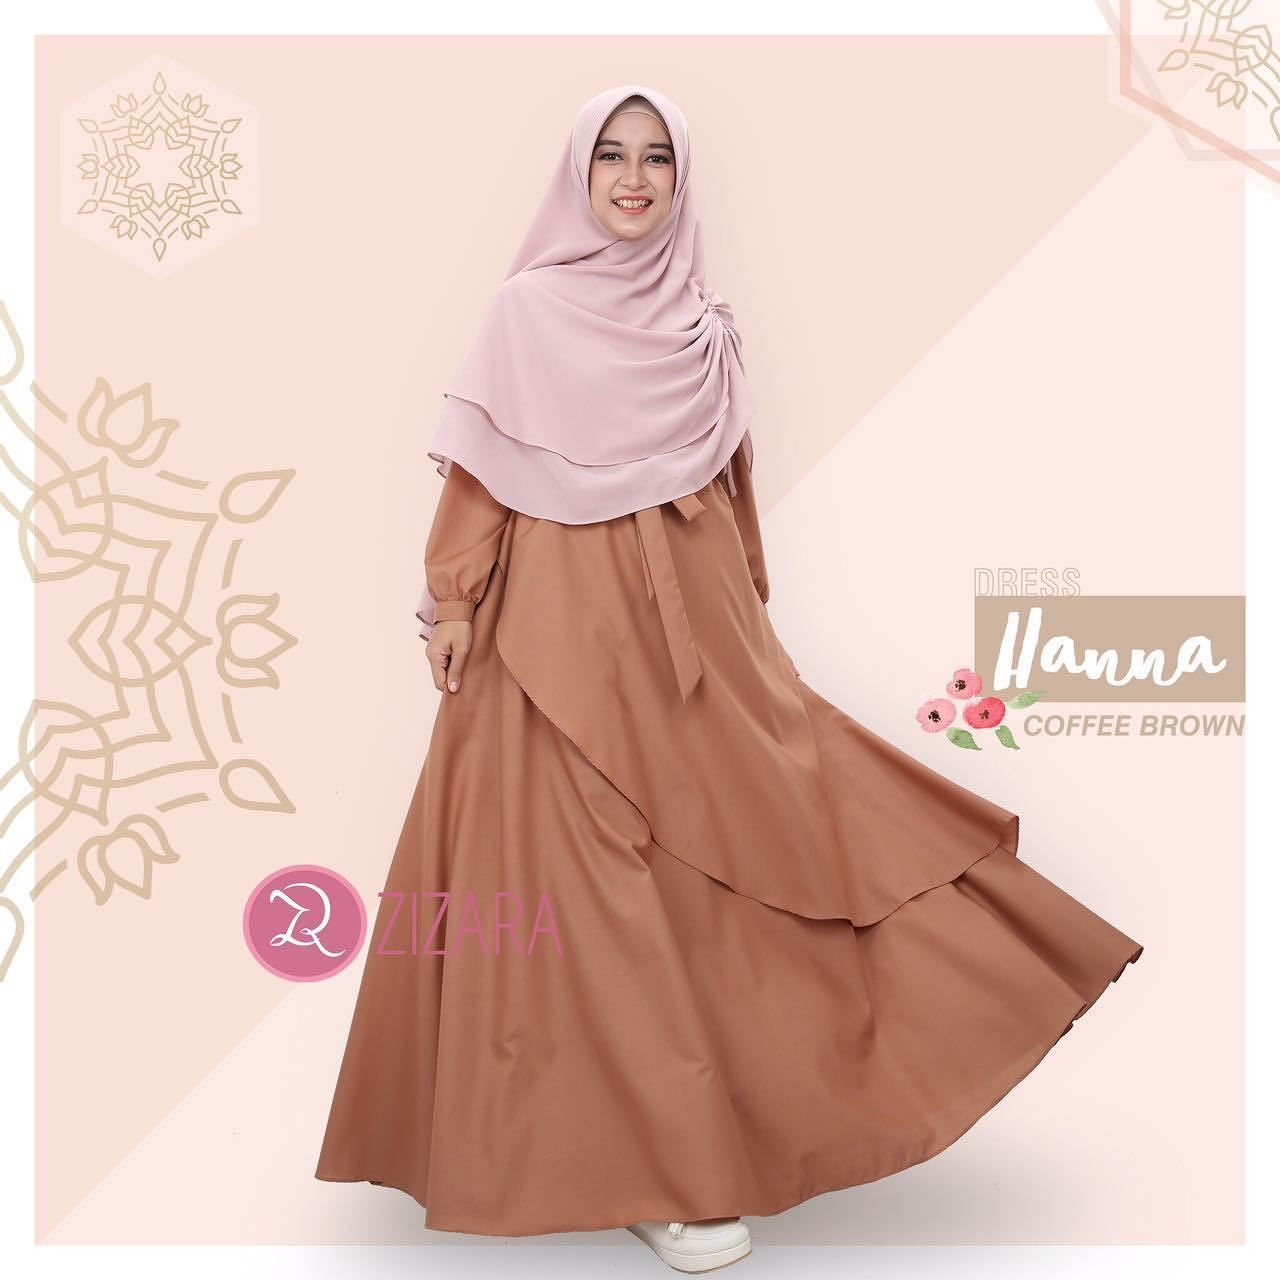 Gamis Zizara Hanna Dress Coffee Brown - baju muslimah busana